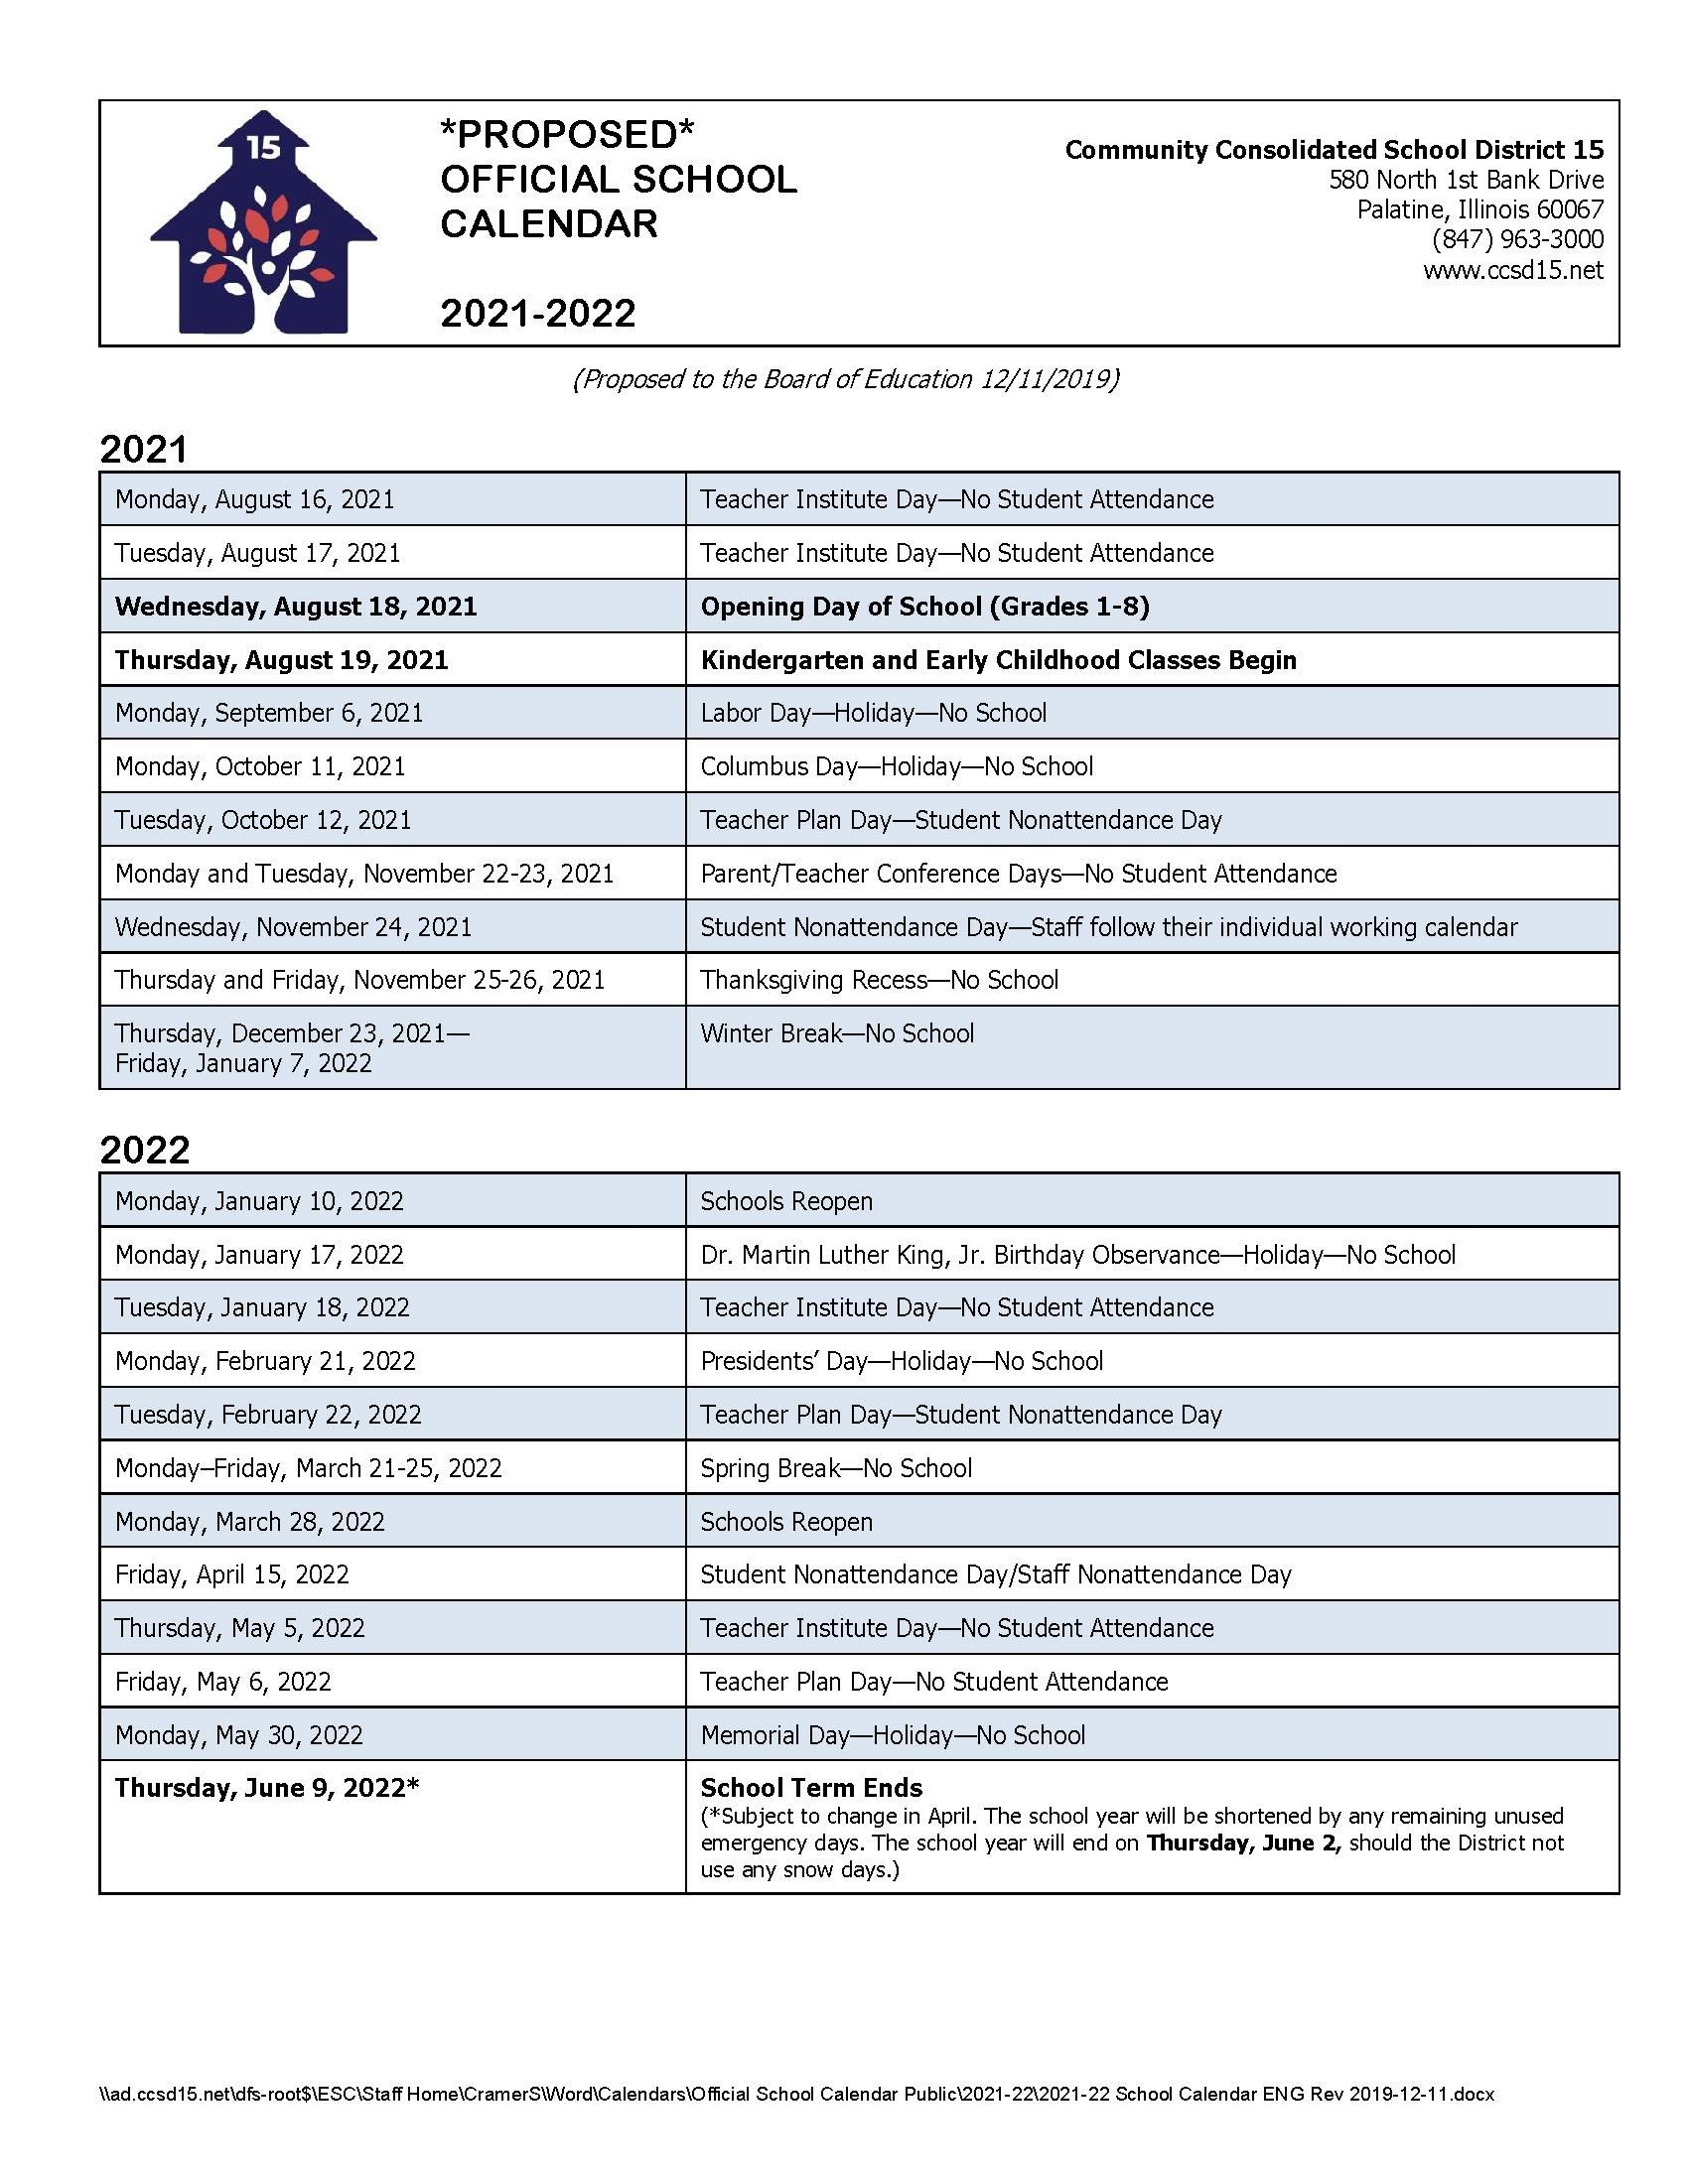 September 2021 School Calendar Calendars / 2021 22 *Proposed* Official School Calendar